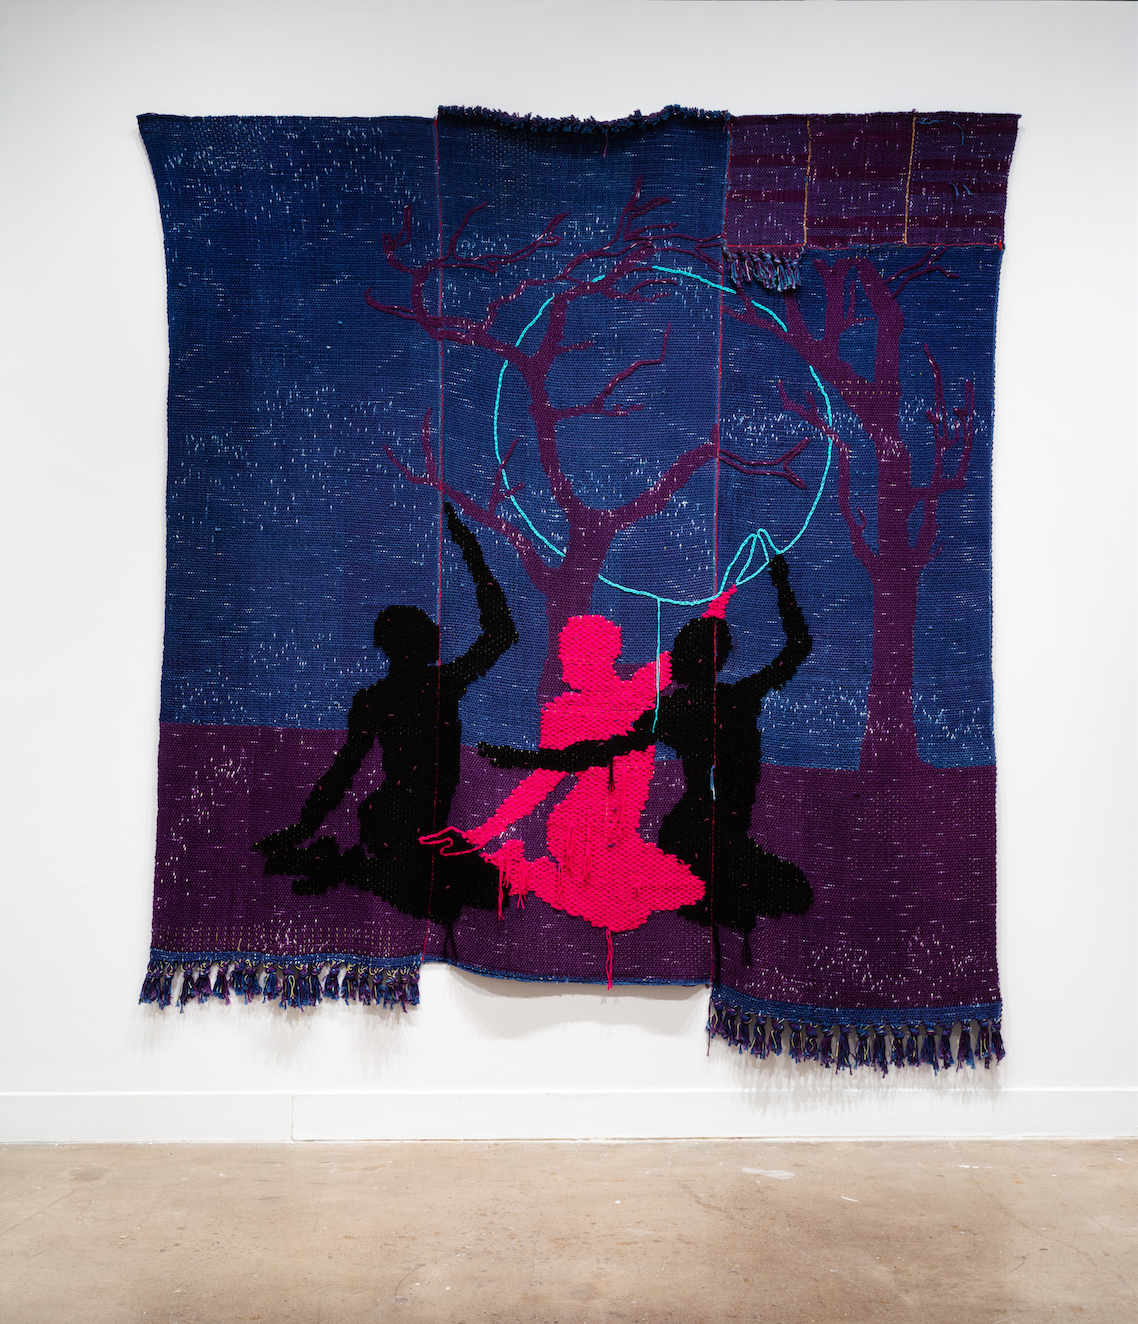 Diedrick Brackens, flying geese (installation view), 2020, woven cotton and acrylic yarn. Image courtesy of Oakville Galleries. Photo: Laura Findlay.